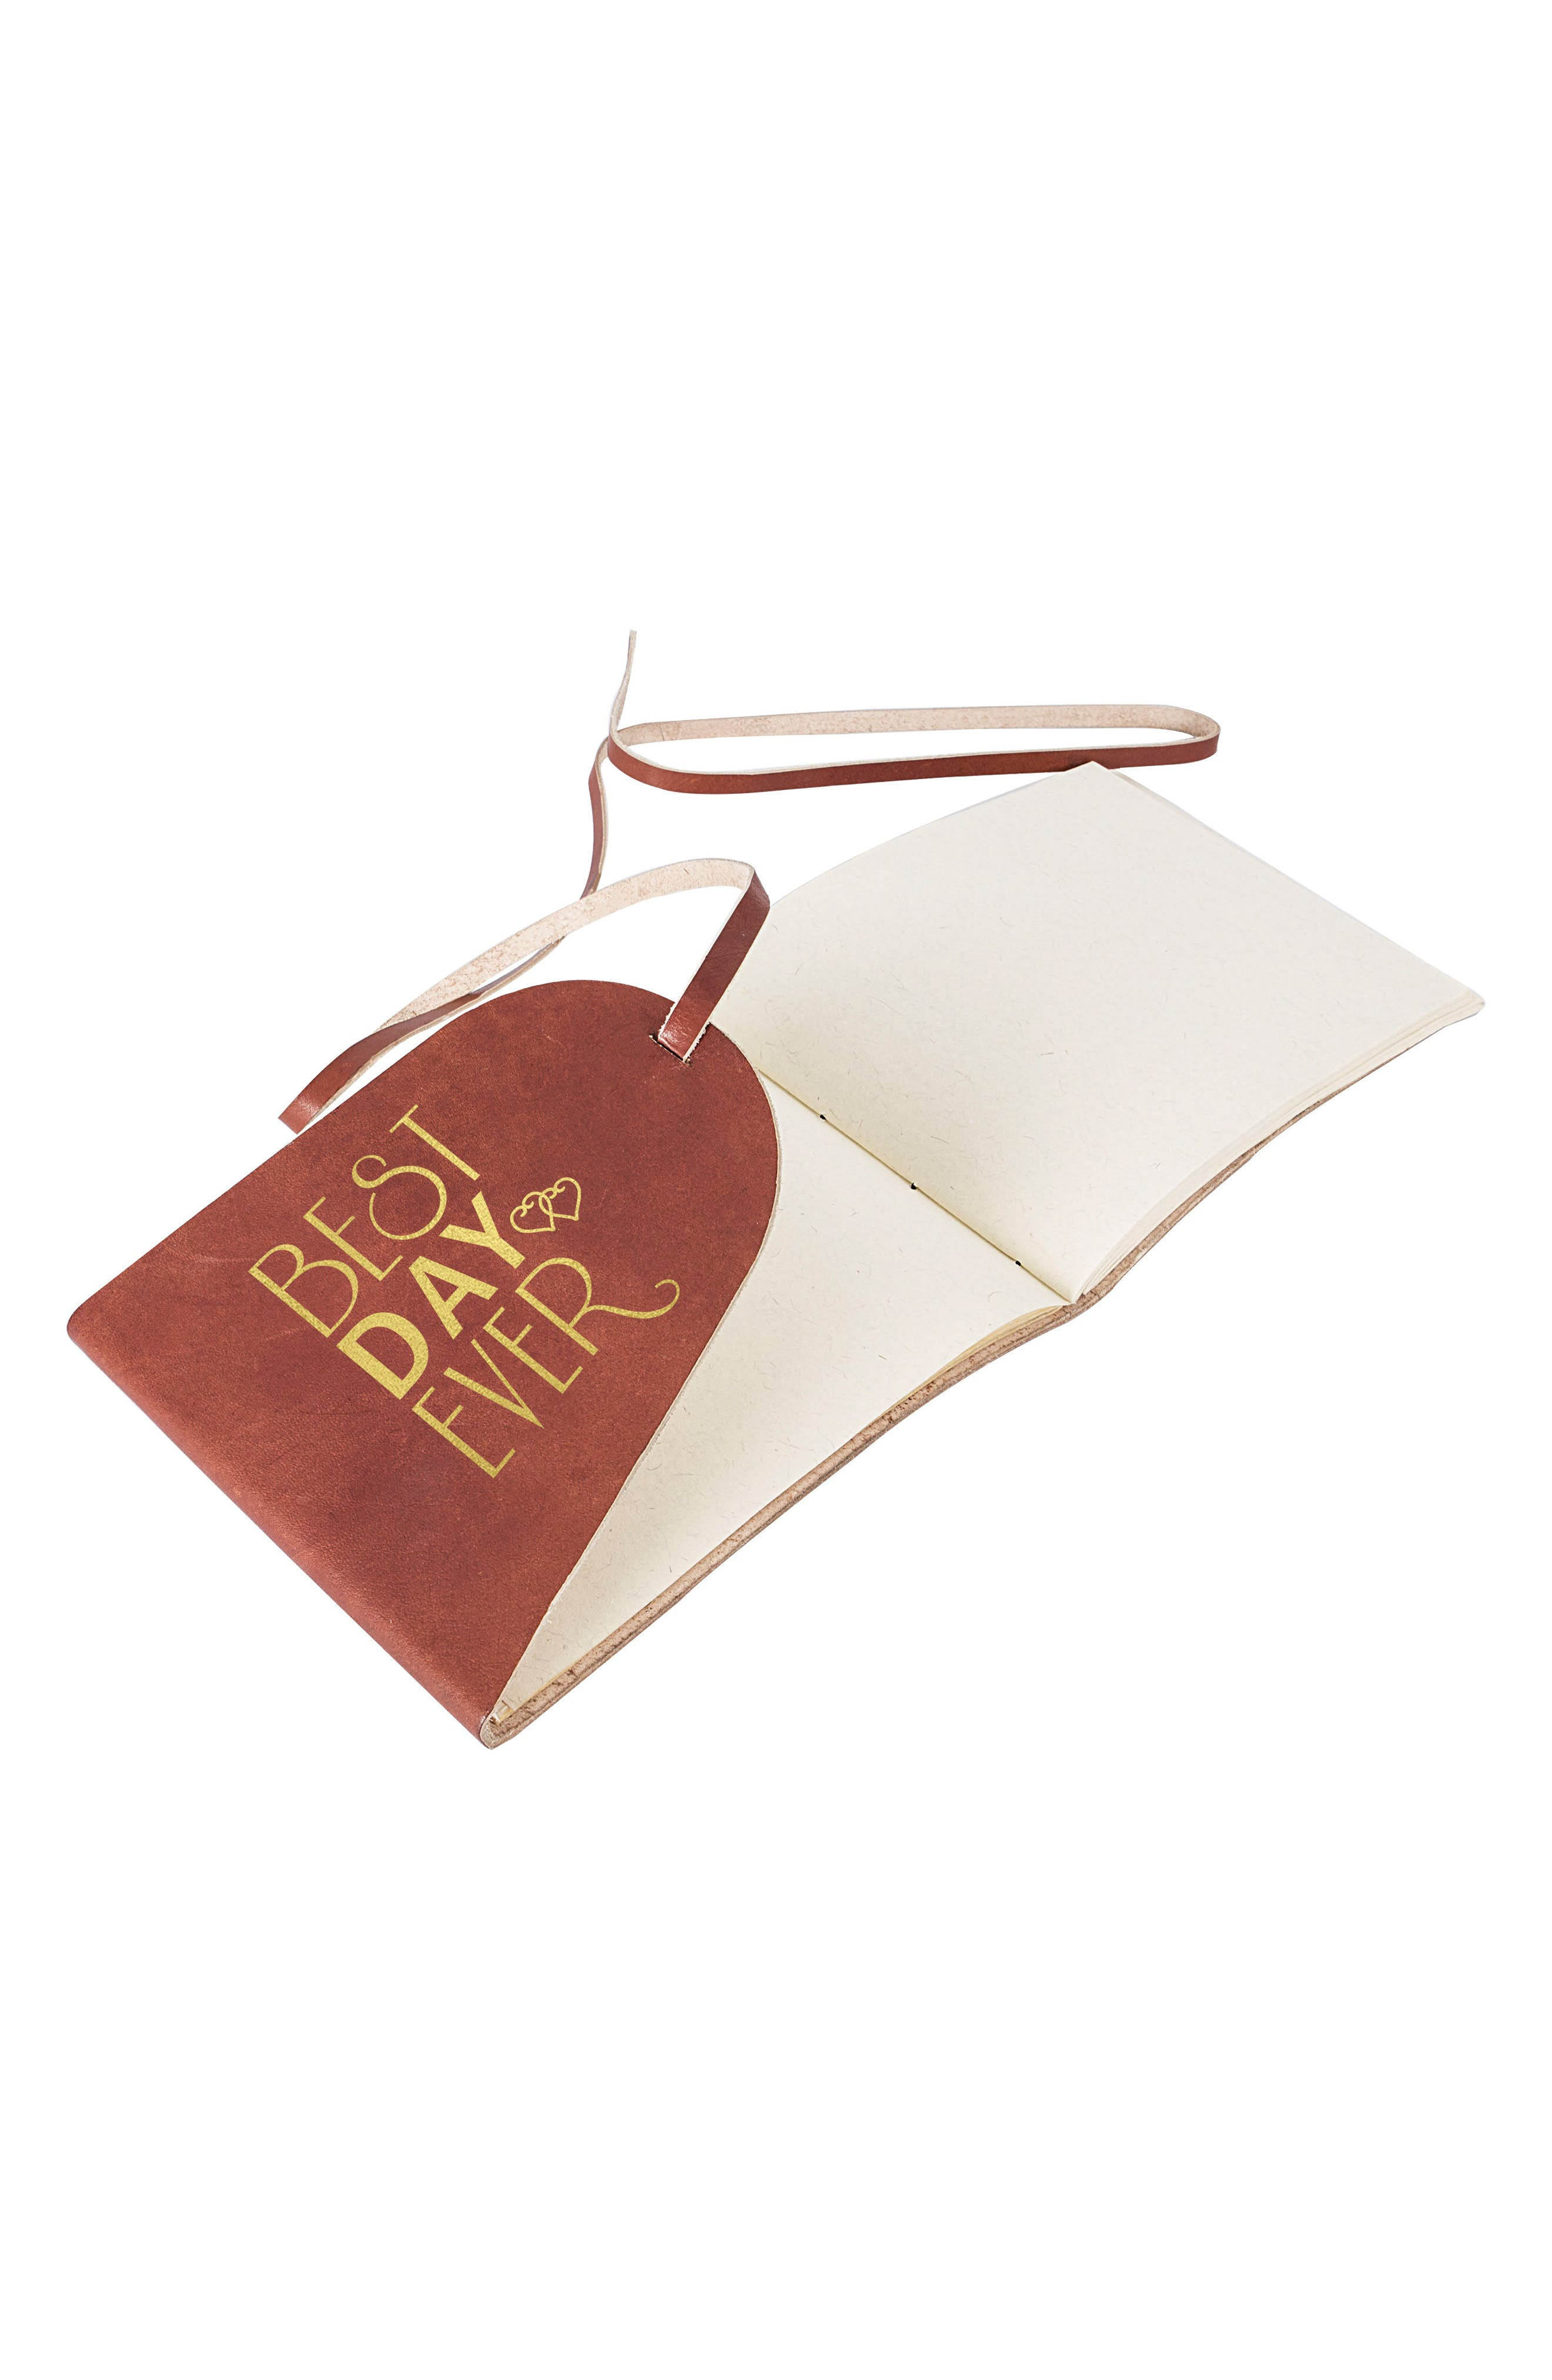 Best Day Ever Leather Guest Book,                             Main thumbnail 1, color,                             710